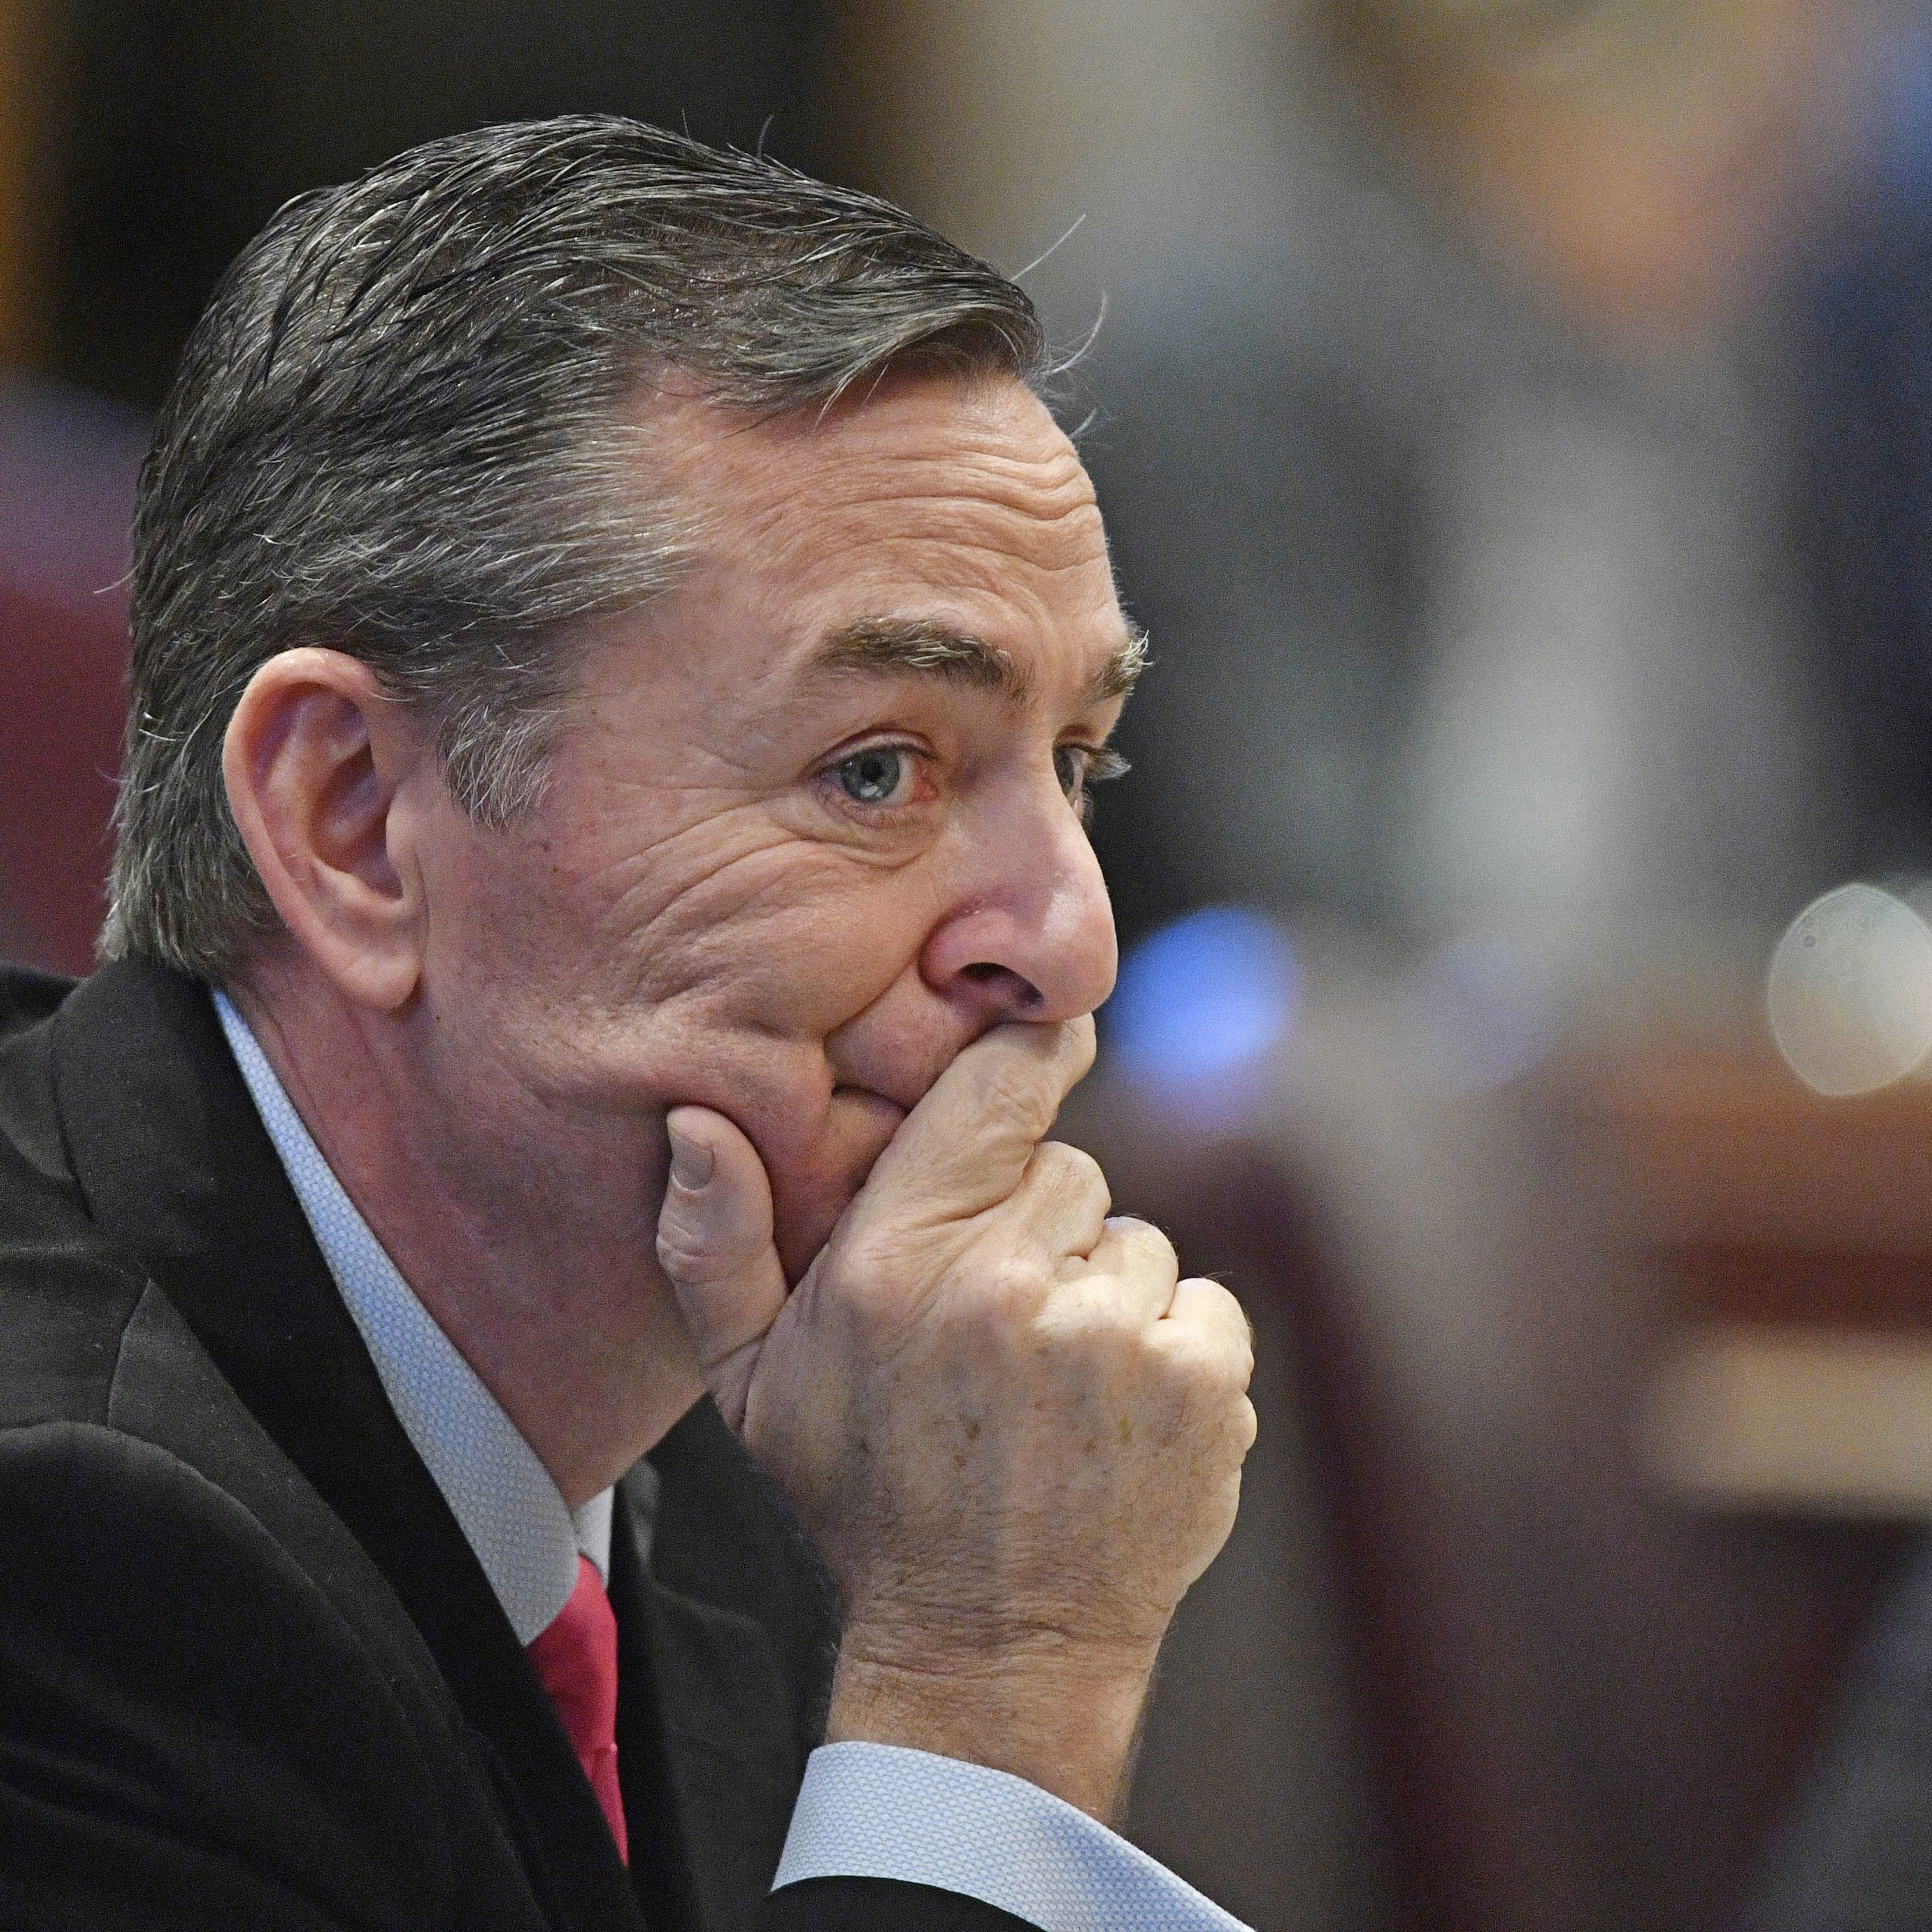 Tennessee House Speaker Glen Casada has failed in his duty. Time for a new speaker | Opinion